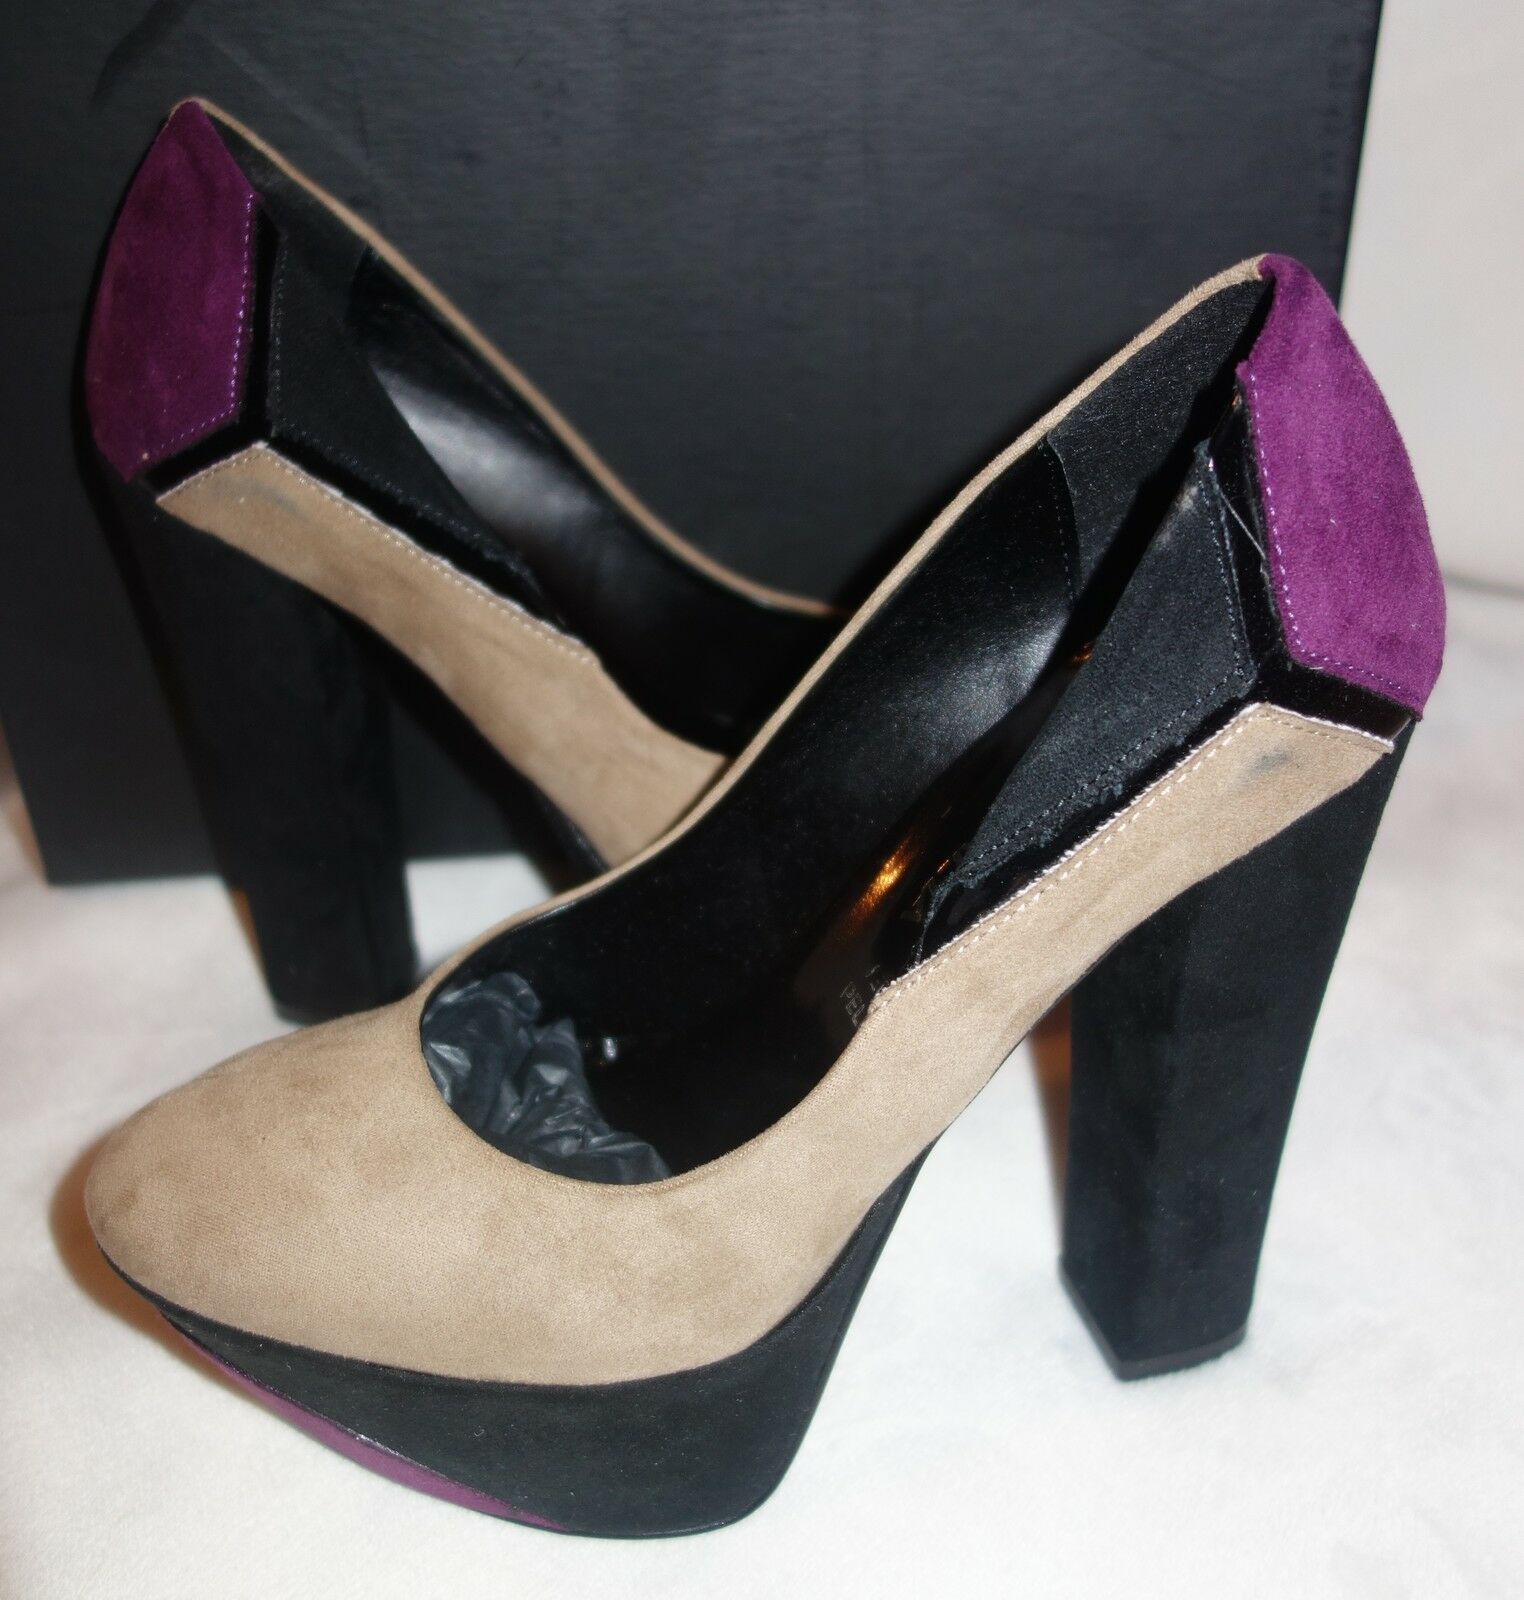 Made in Italia Platform Pumps multi color Suede  Size 39 us 8.5 new